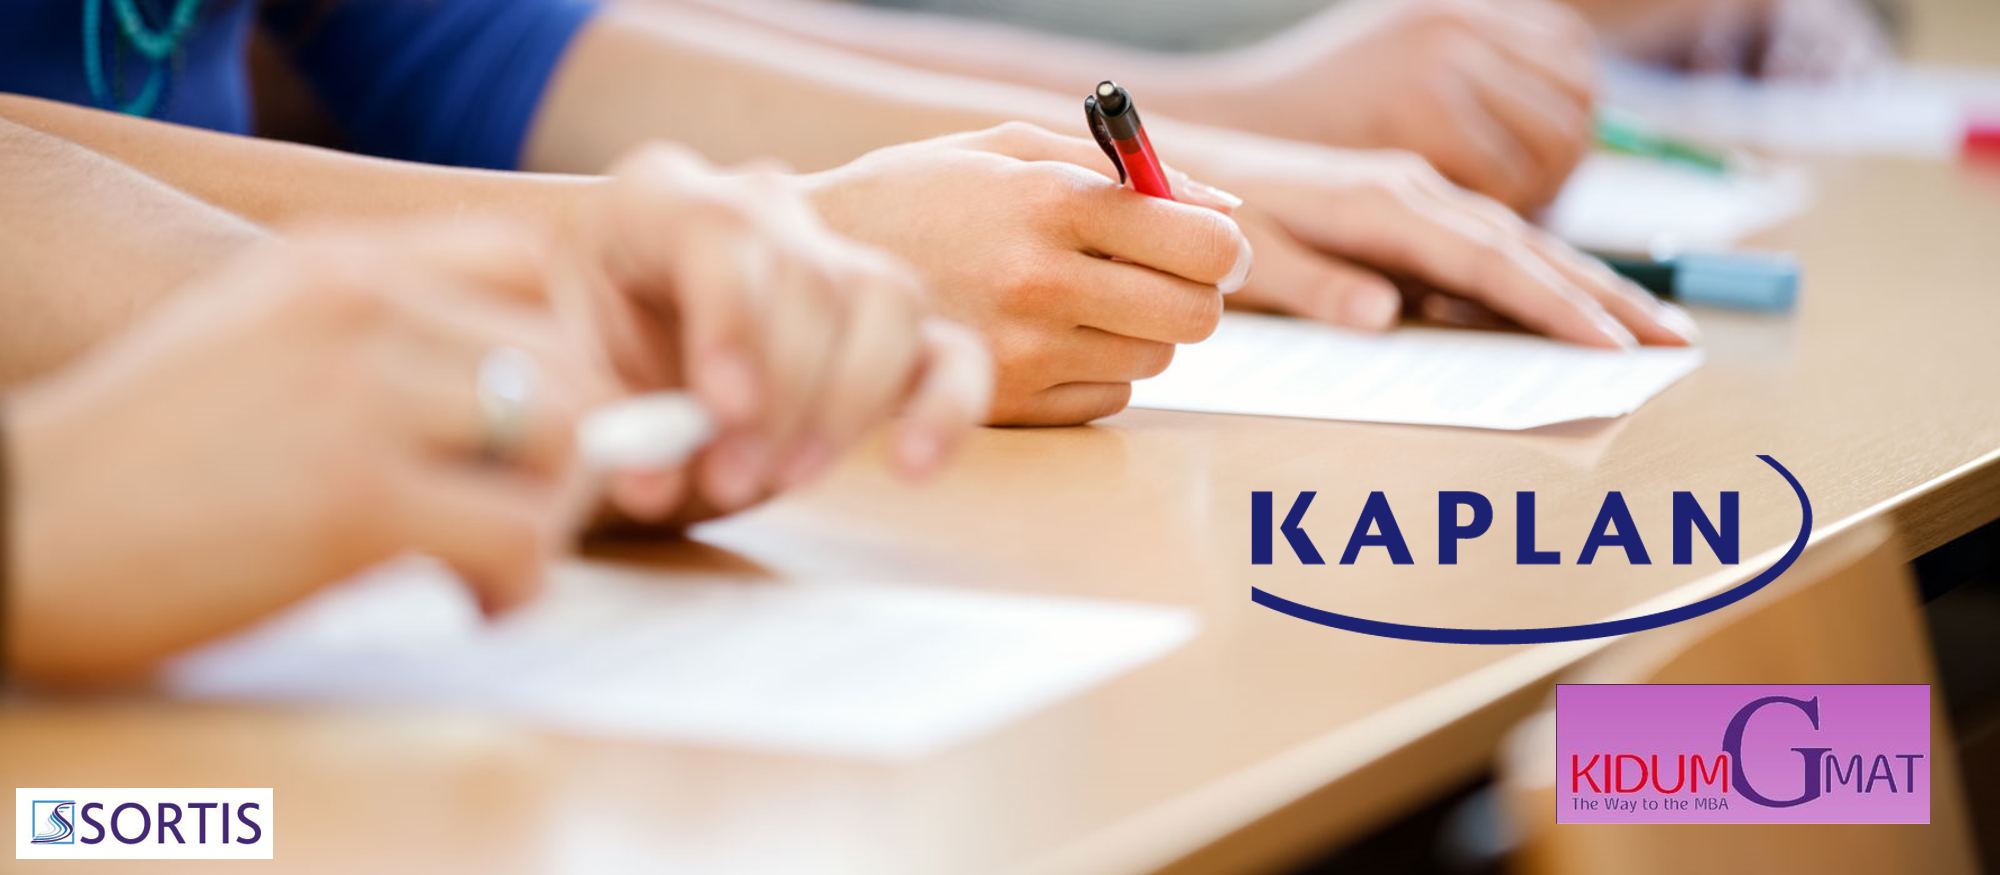 American Educational Services Provider Kaplan Acquires the Israeli Test Prep Center Kidum Group